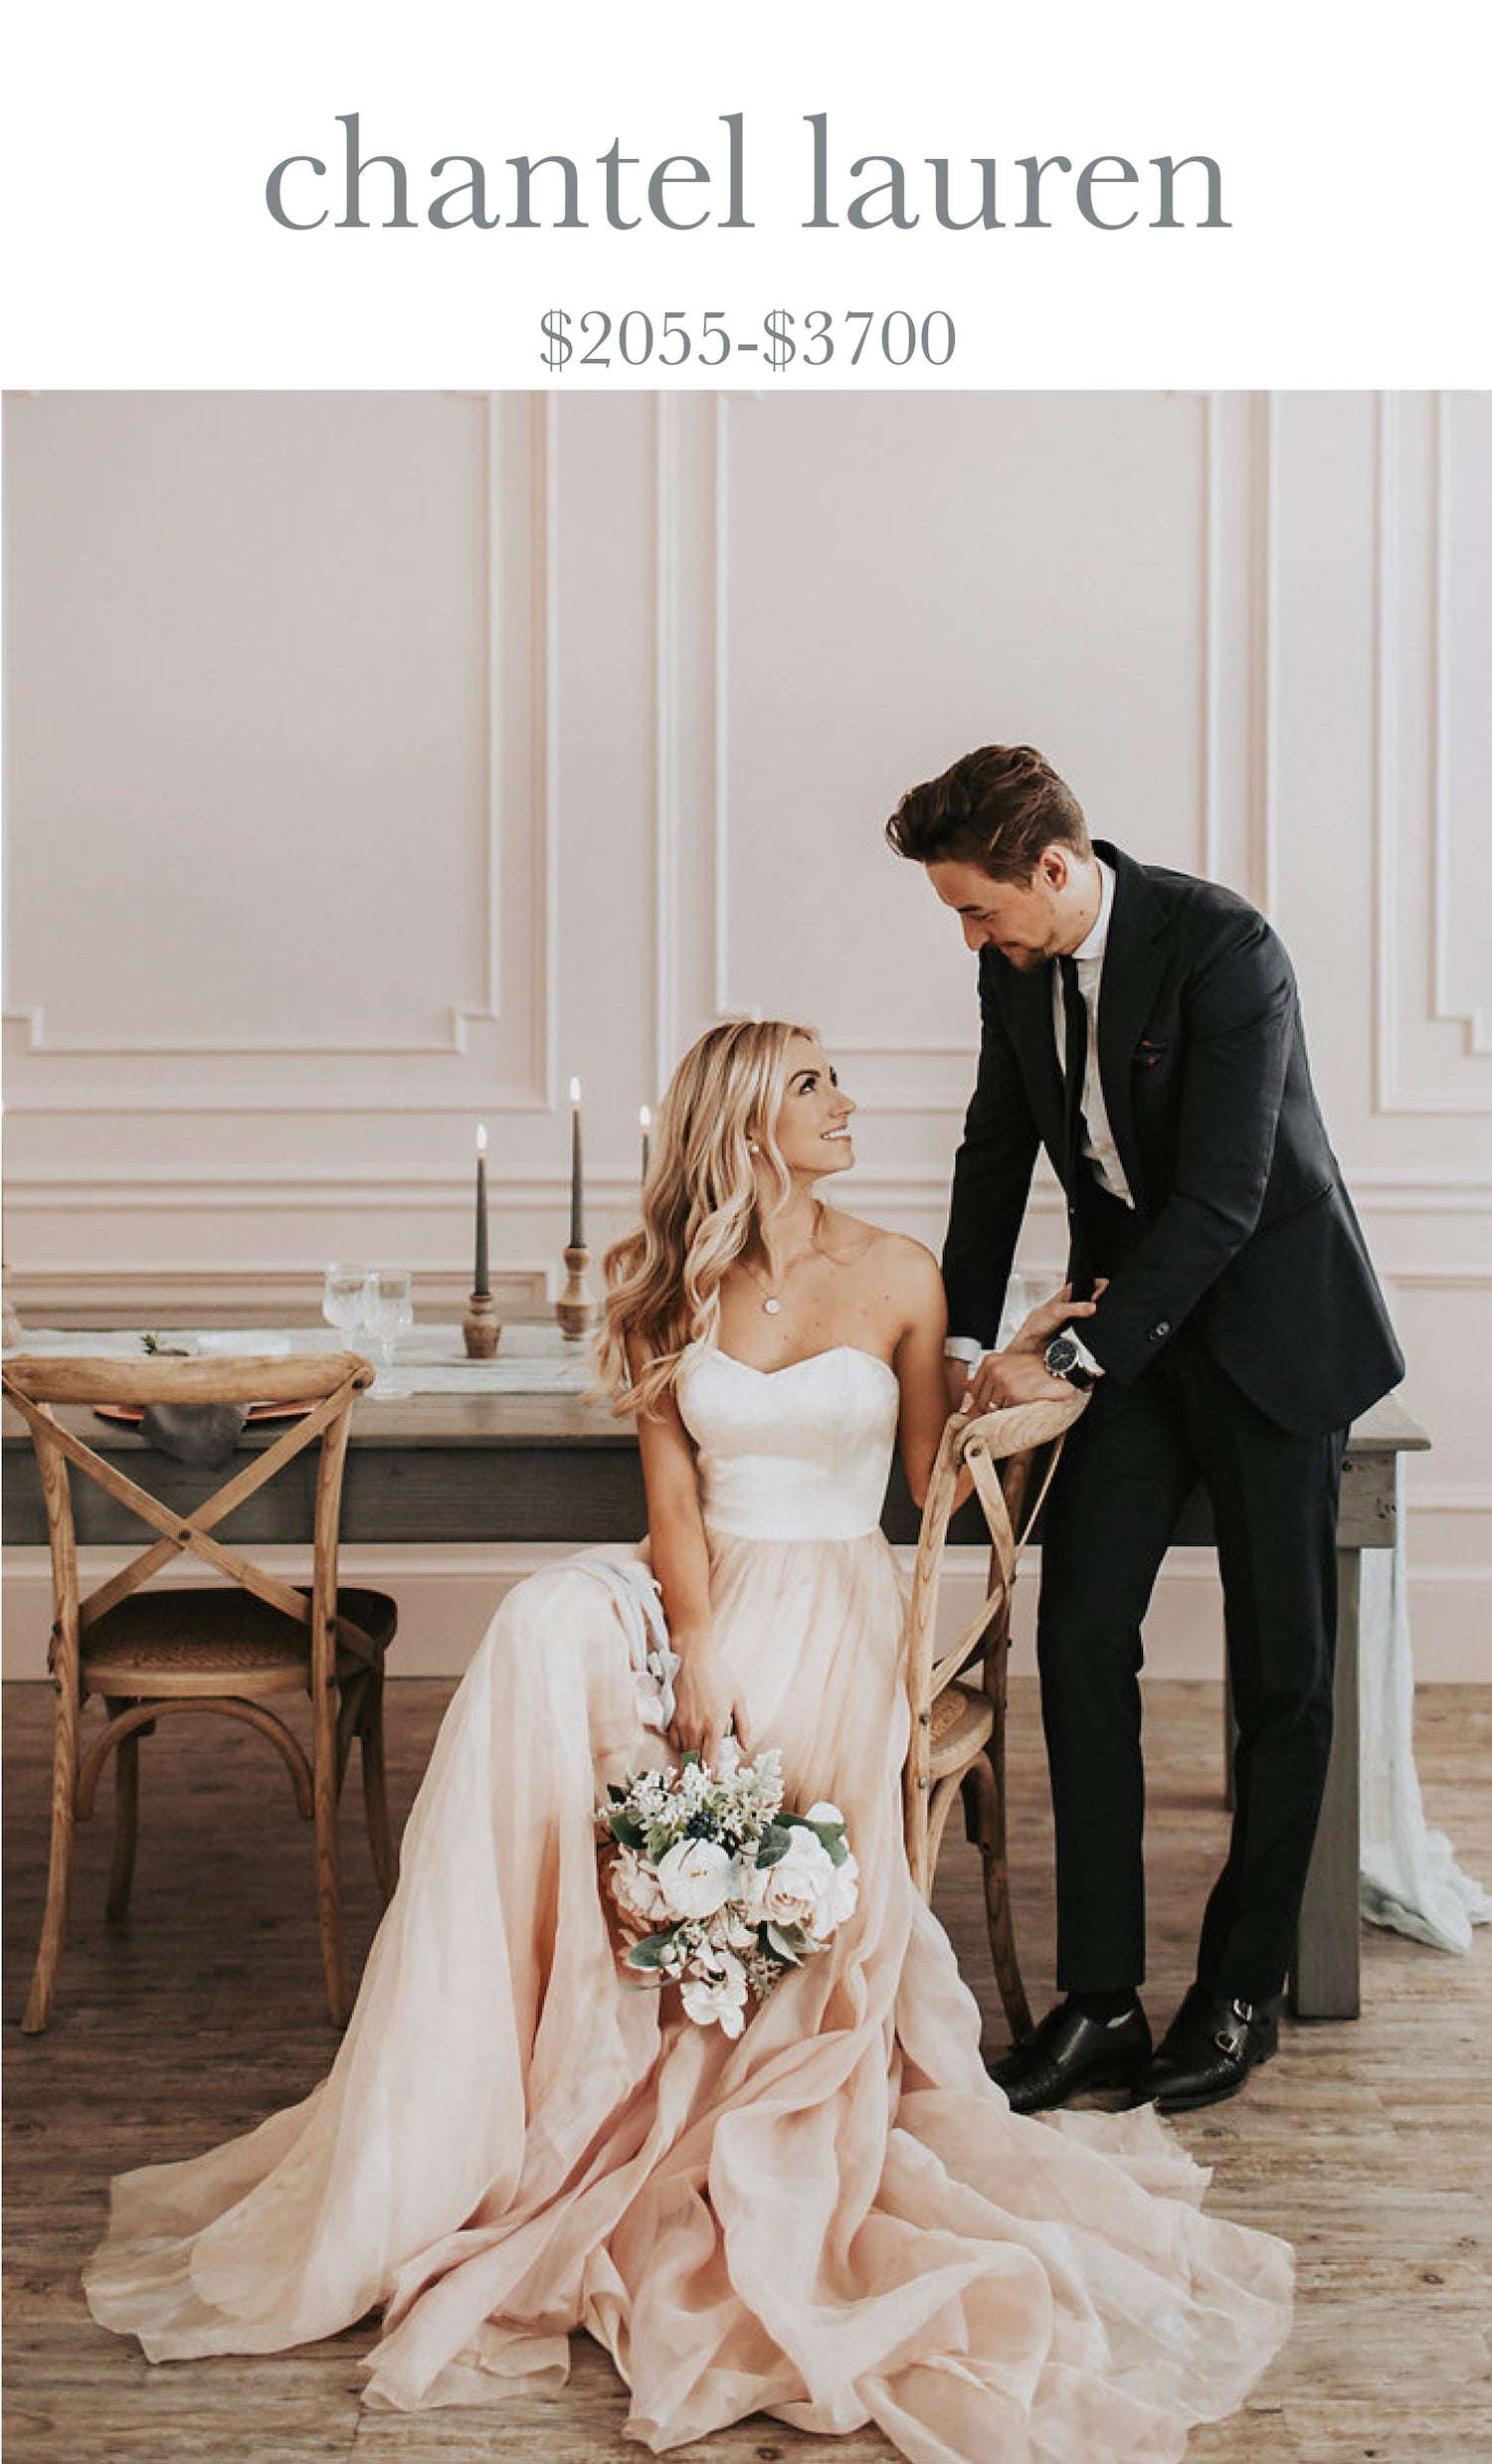 chantel lauren wedding dresses